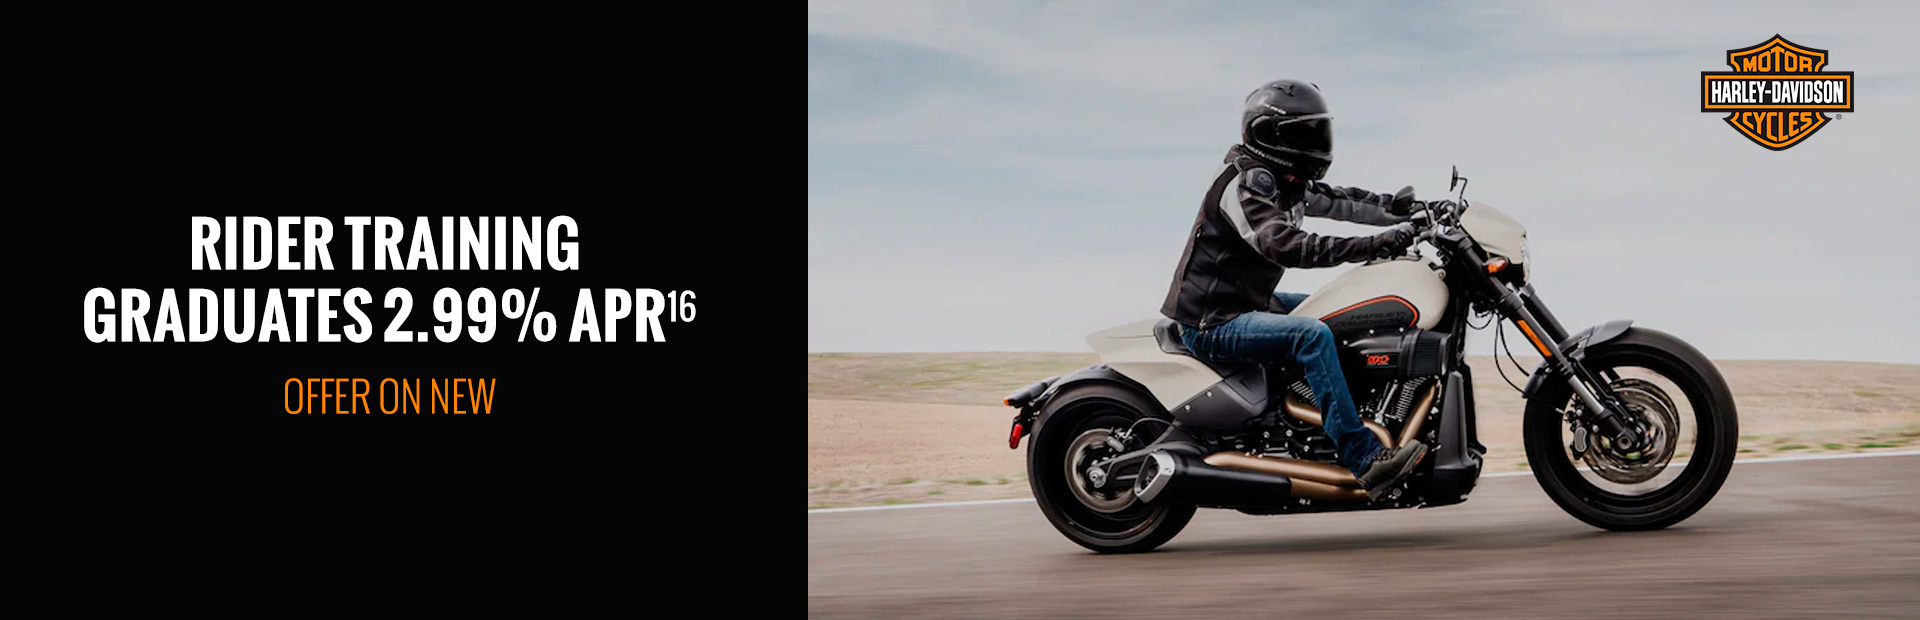 Harley-Davidson®: RIDER TRAINING GRADUATES 2.99% APR OFFER ON NEW